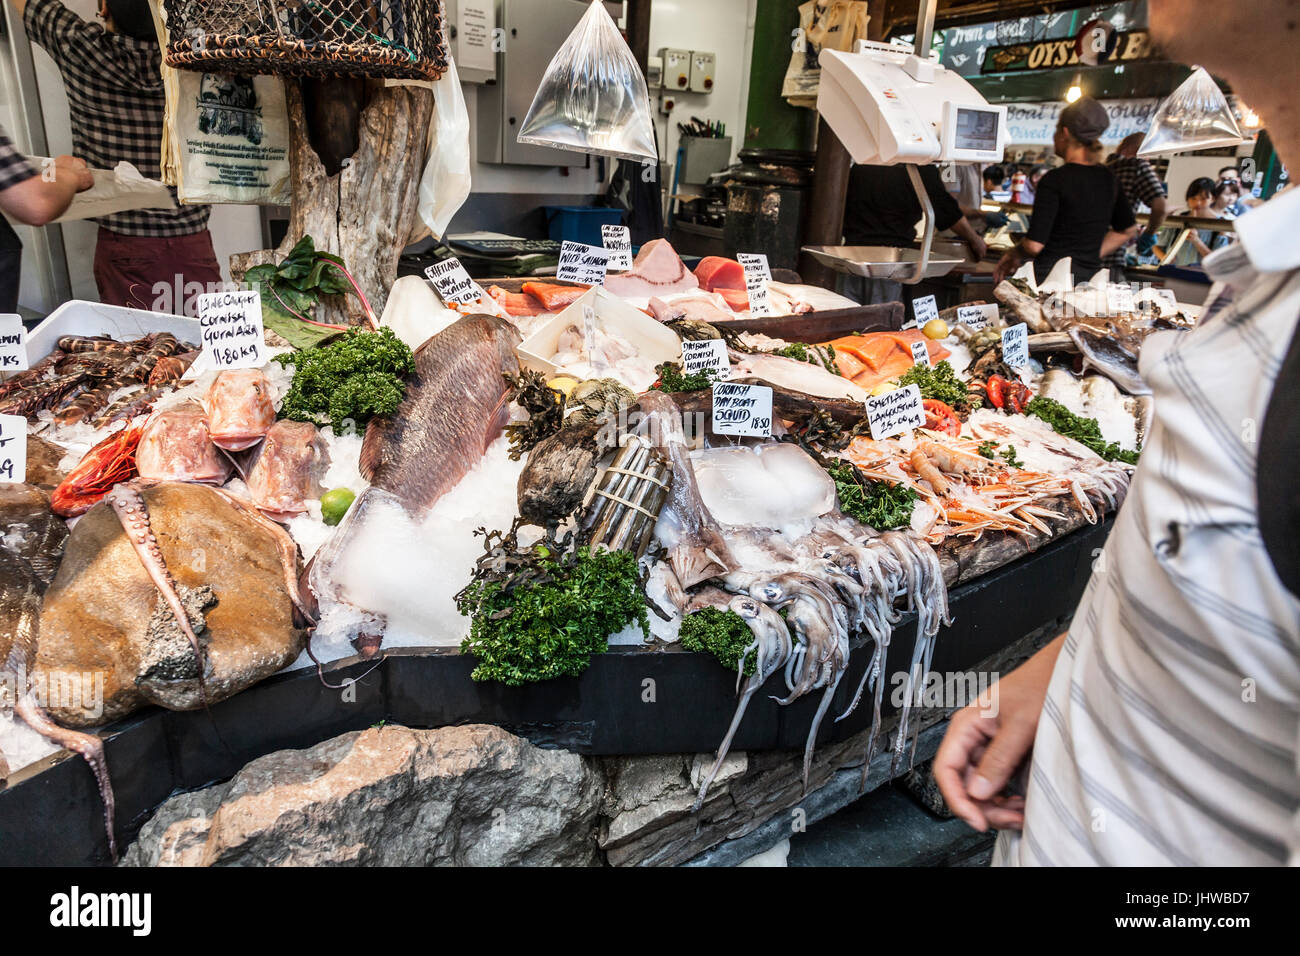 Customer at a wet fish stall in Borough Market, the historic food market in Southwark, central London, England, - Stock Image